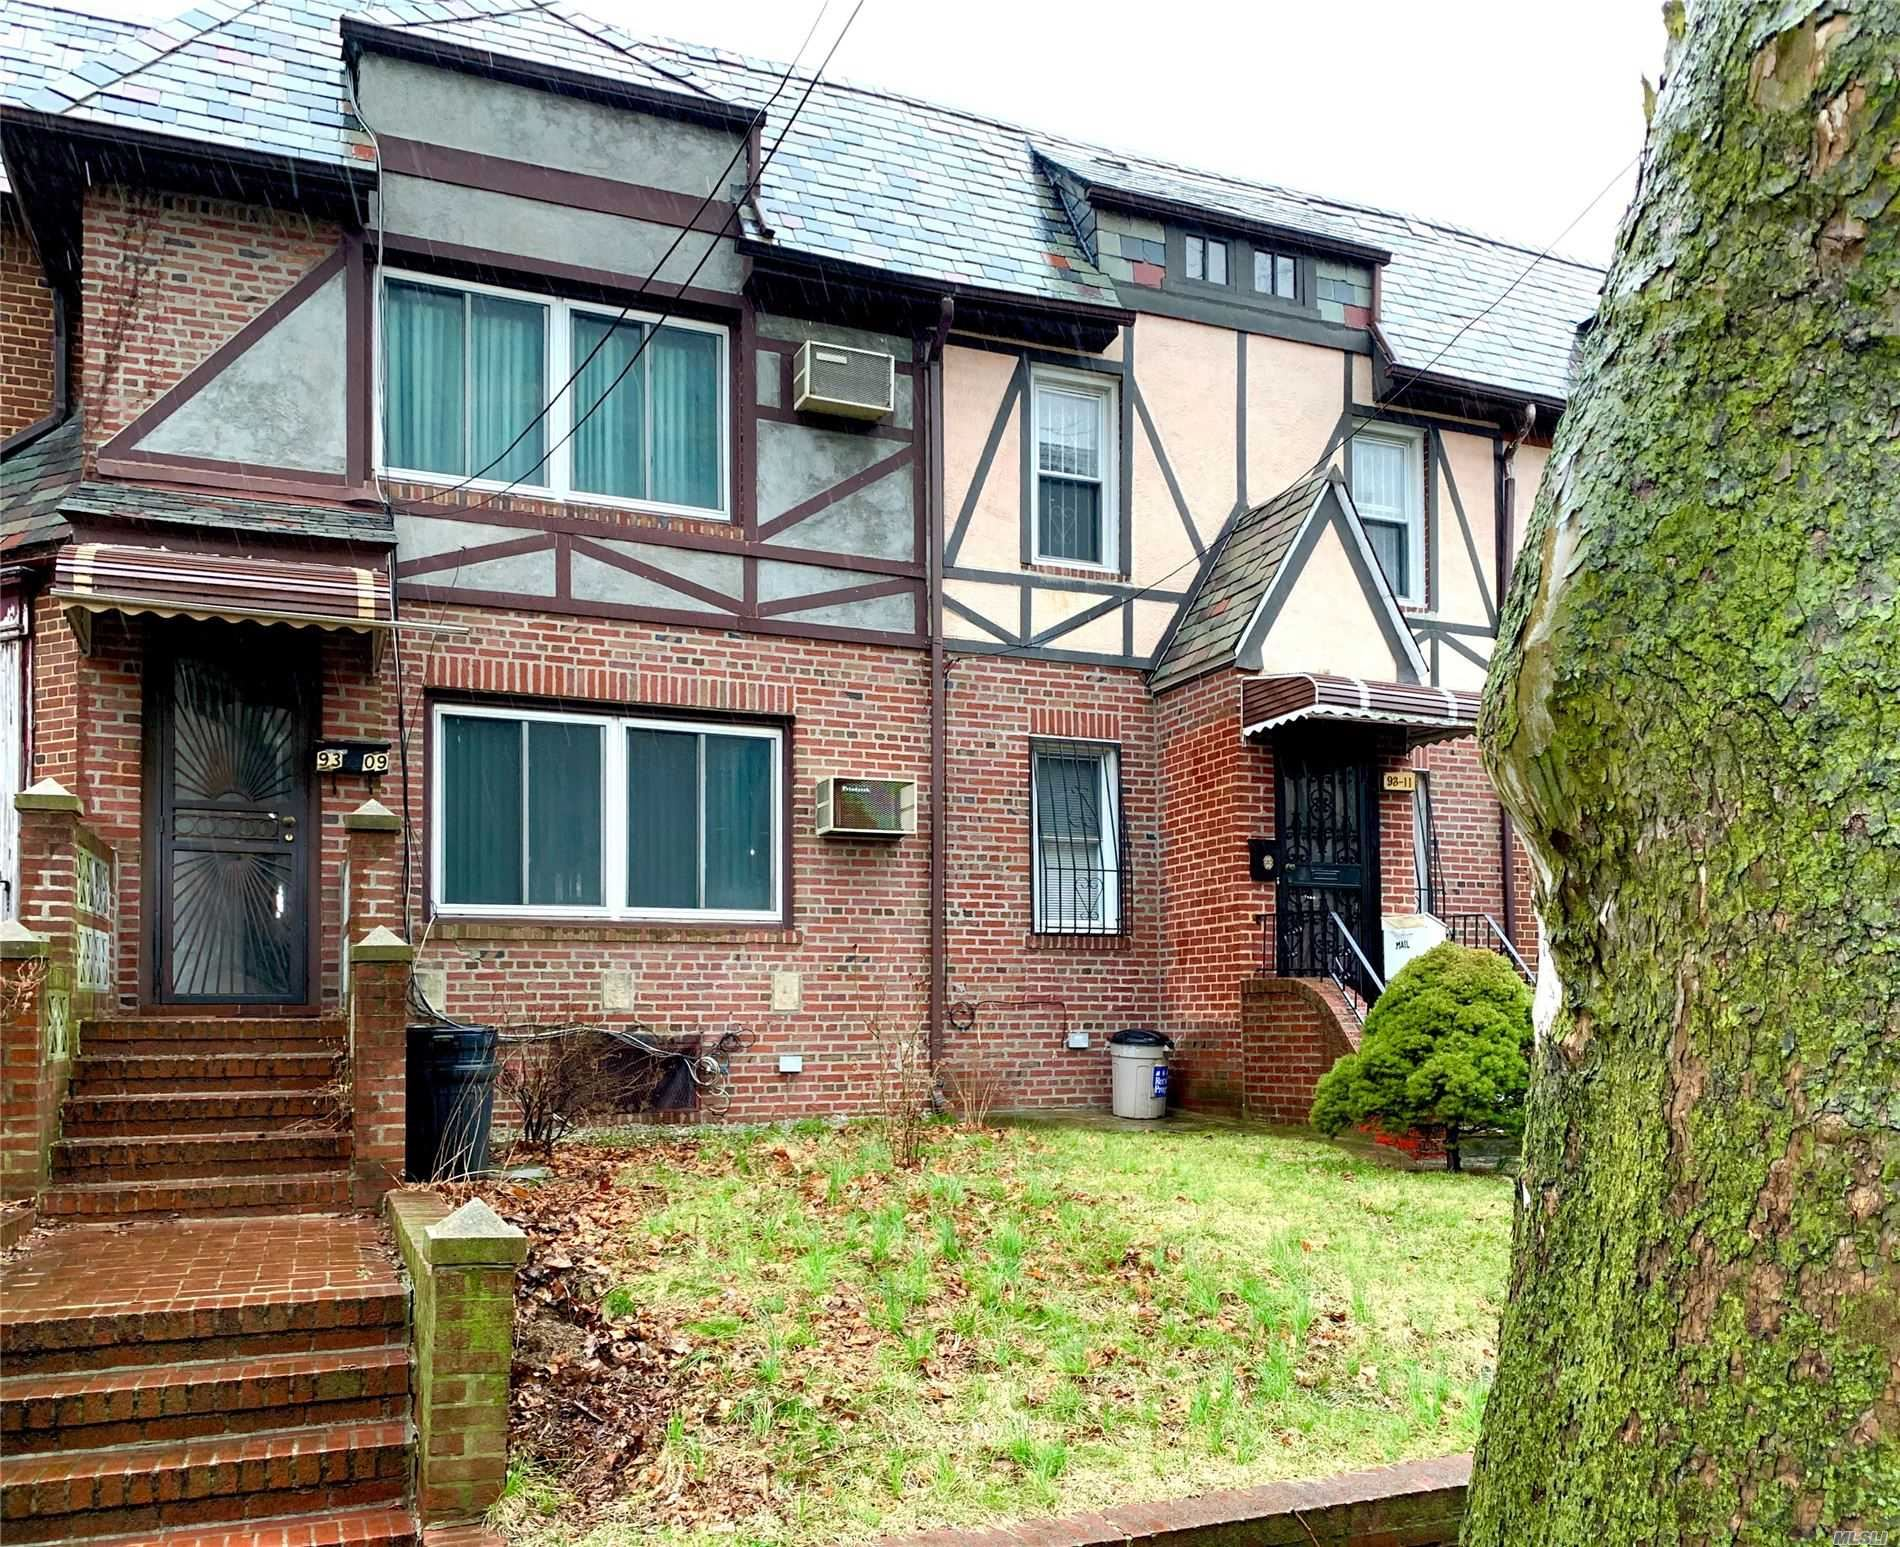 93-09 69th Ave, Forest Hills, NY 11375 - MLS#: 3199035